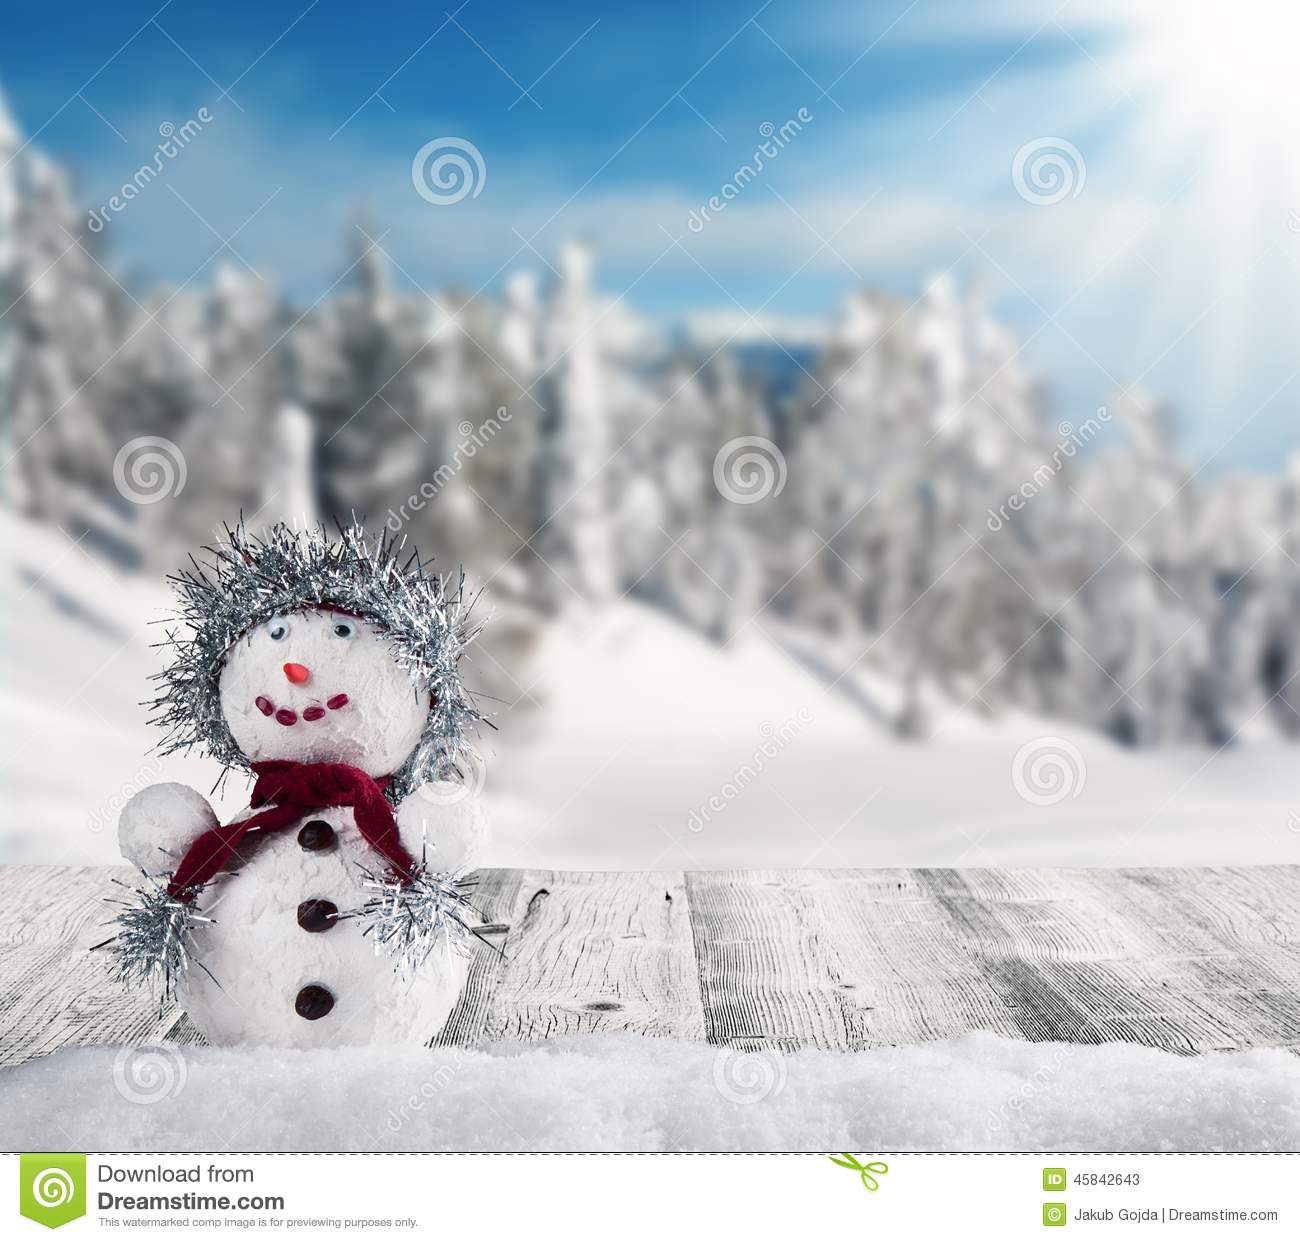 winter snowy scenery with snow man stock image